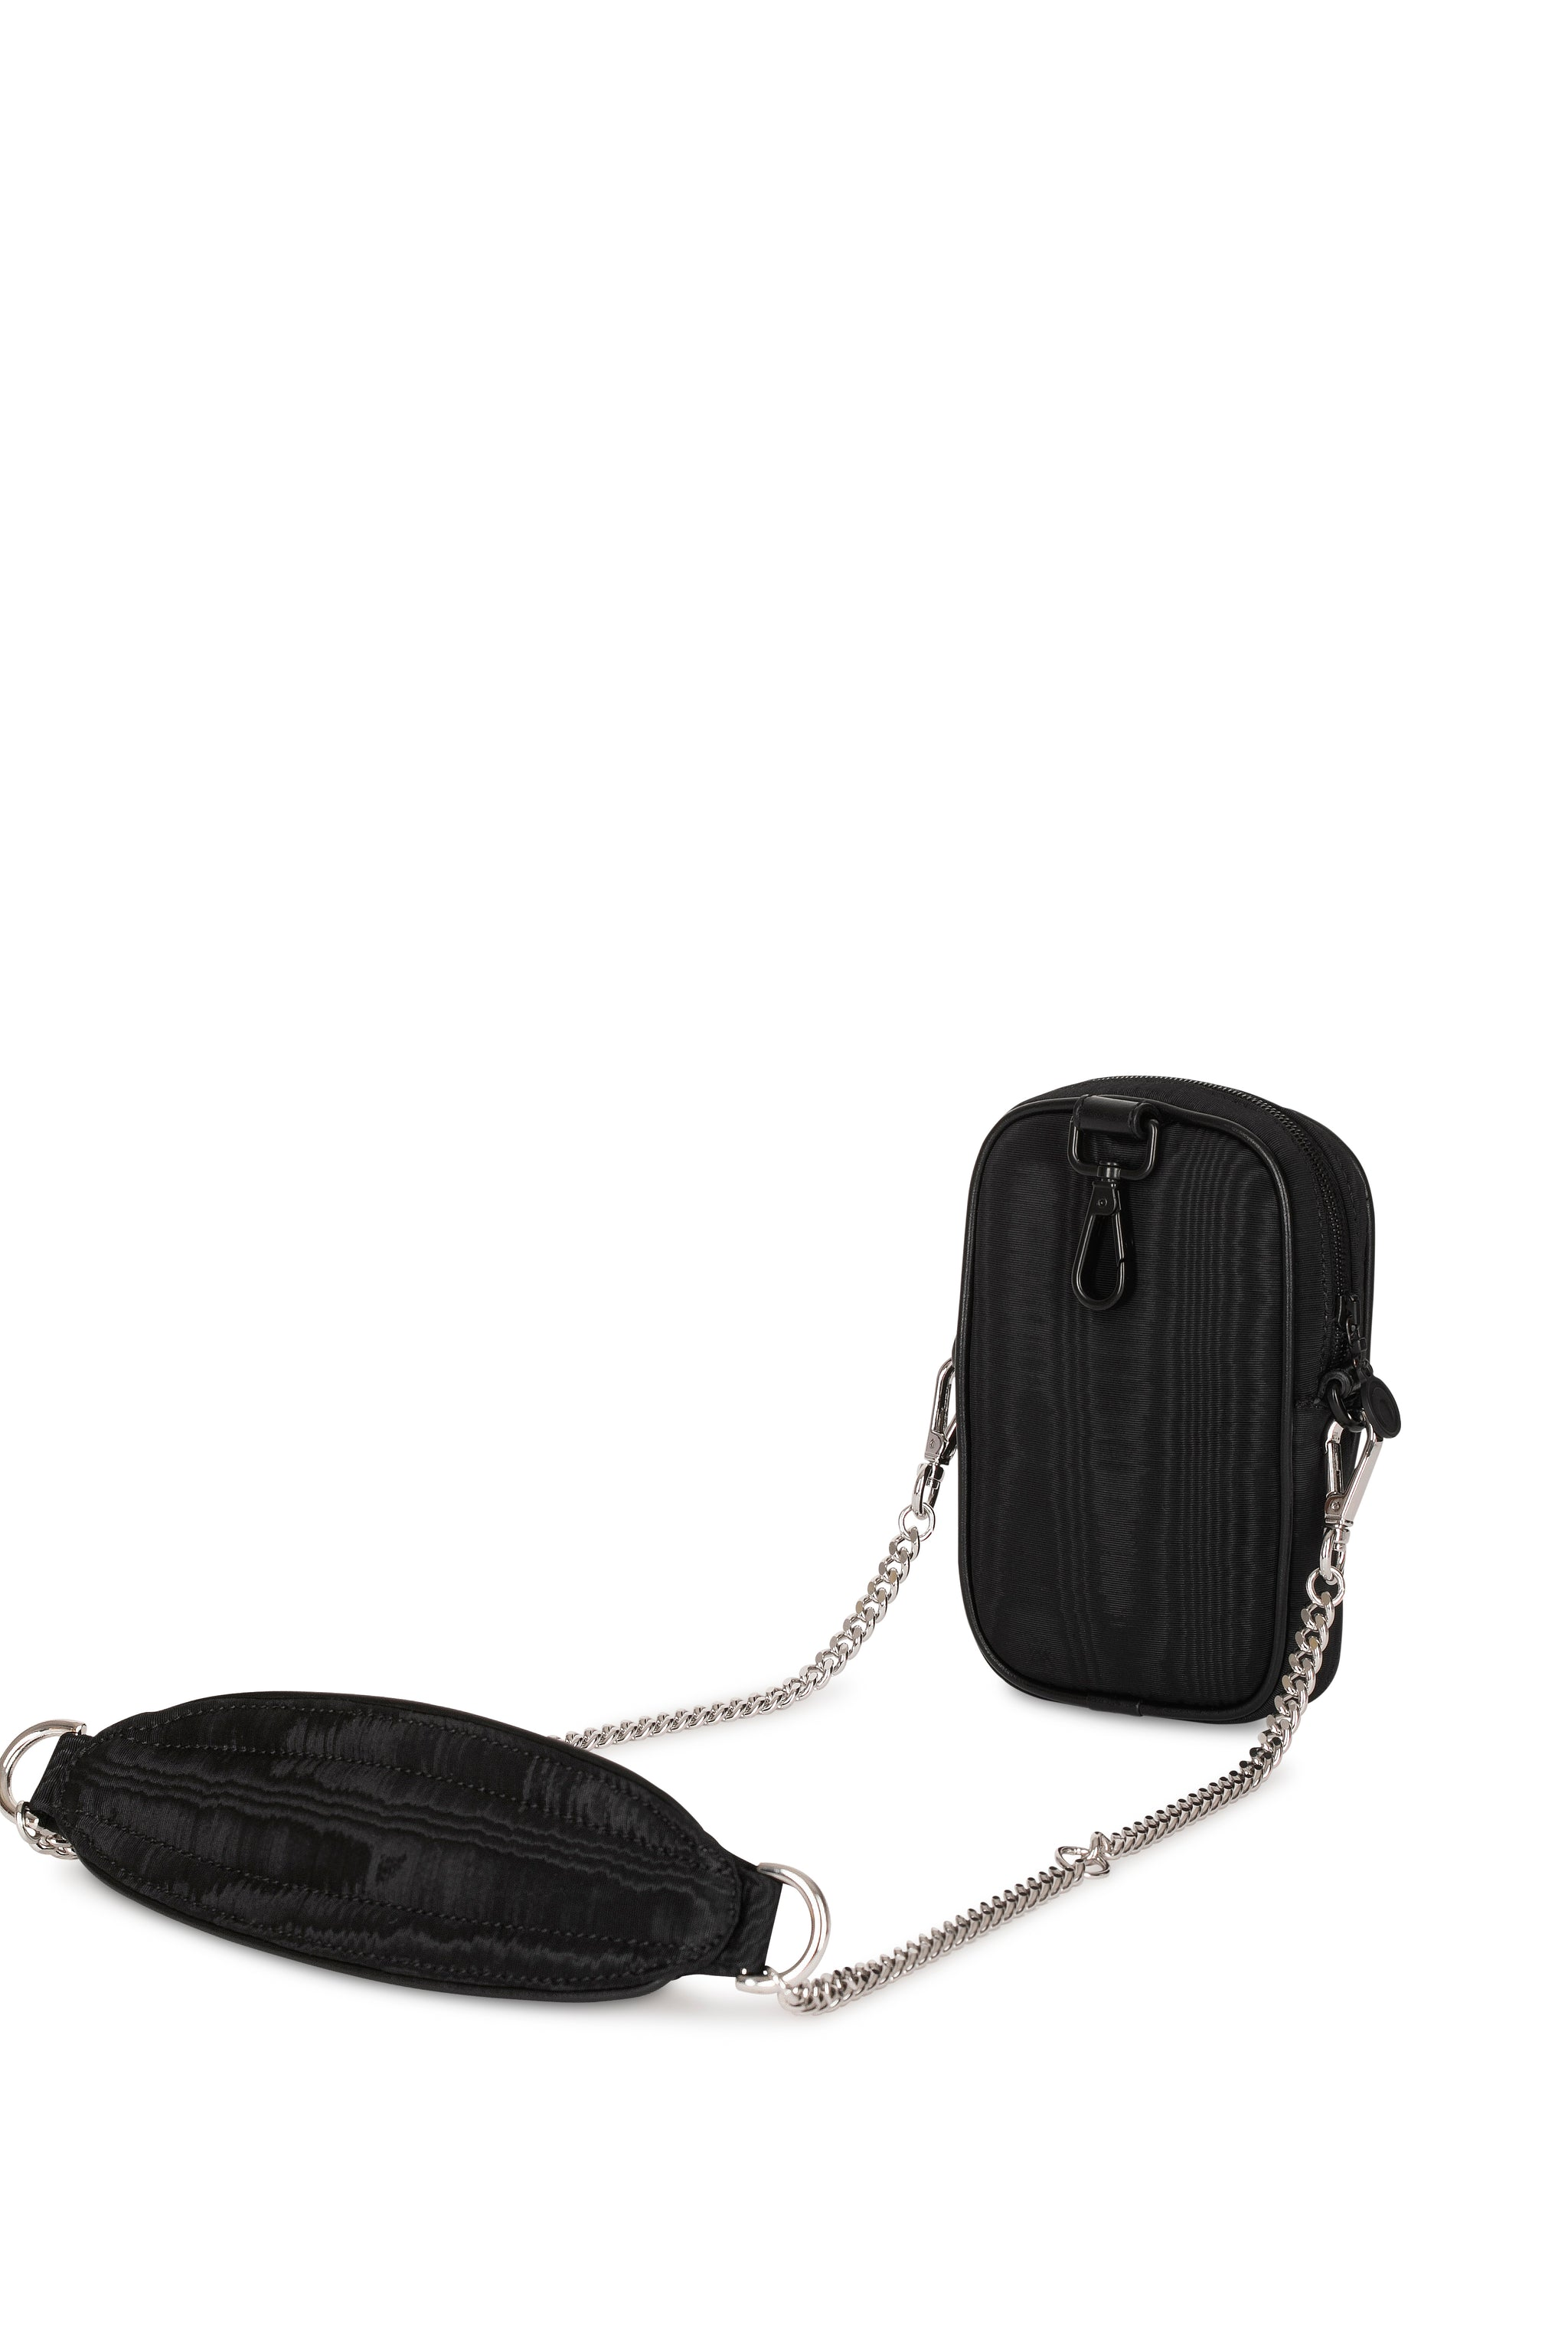 Phone Case Mini Bag Black